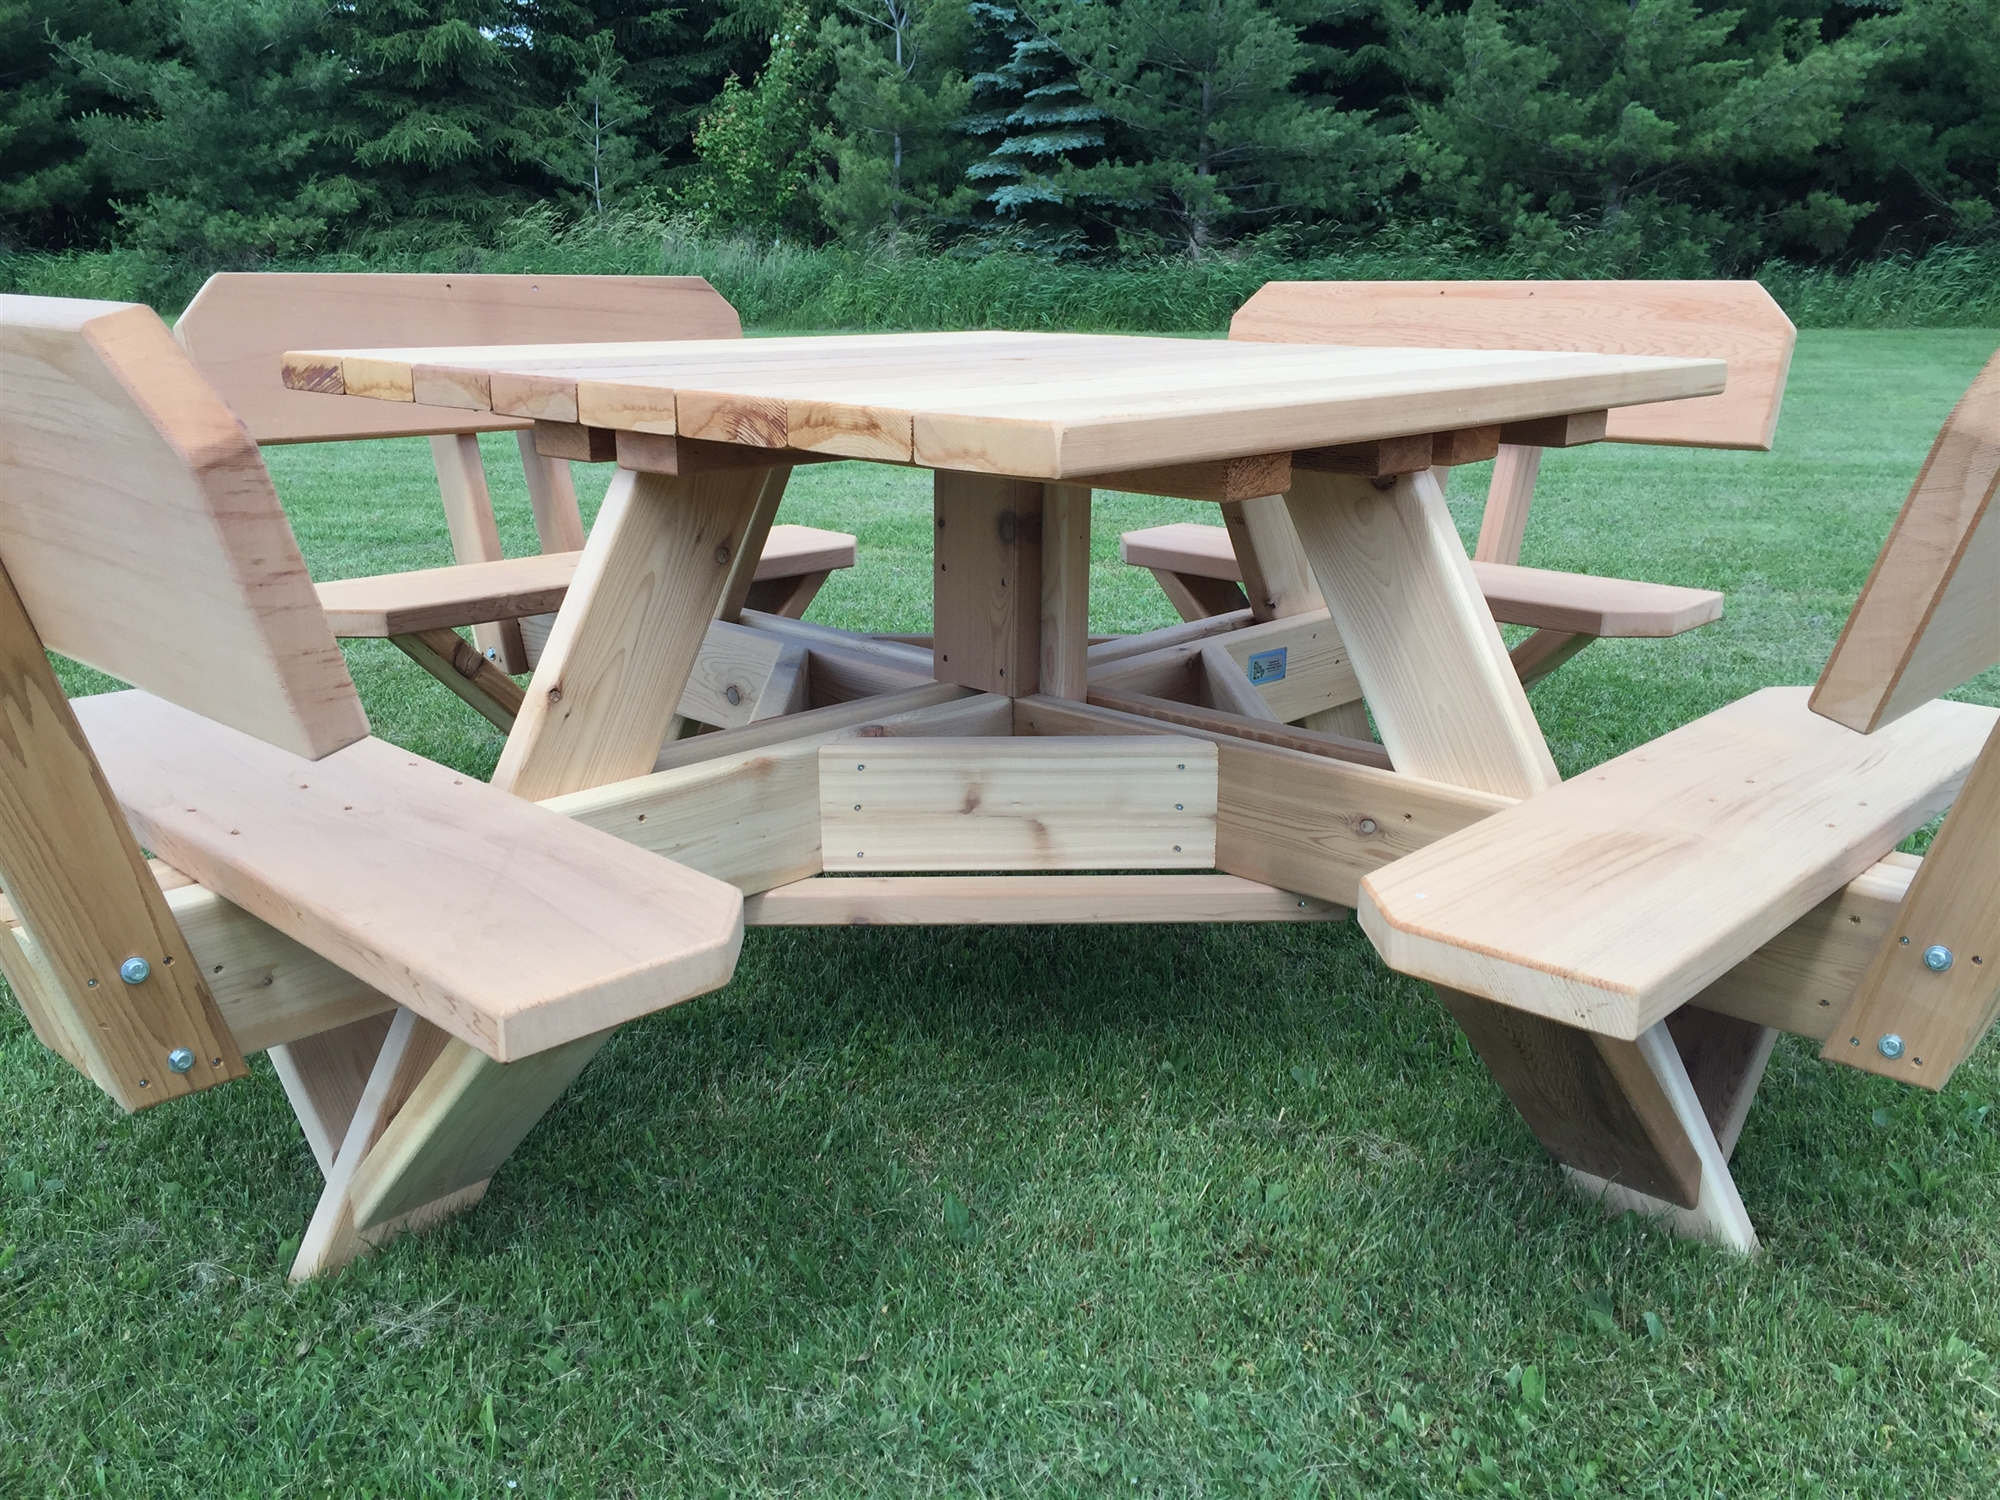 small patio table with umbrella hole 45 picnic table. Black Bedroom Furniture Sets. Home Design Ideas